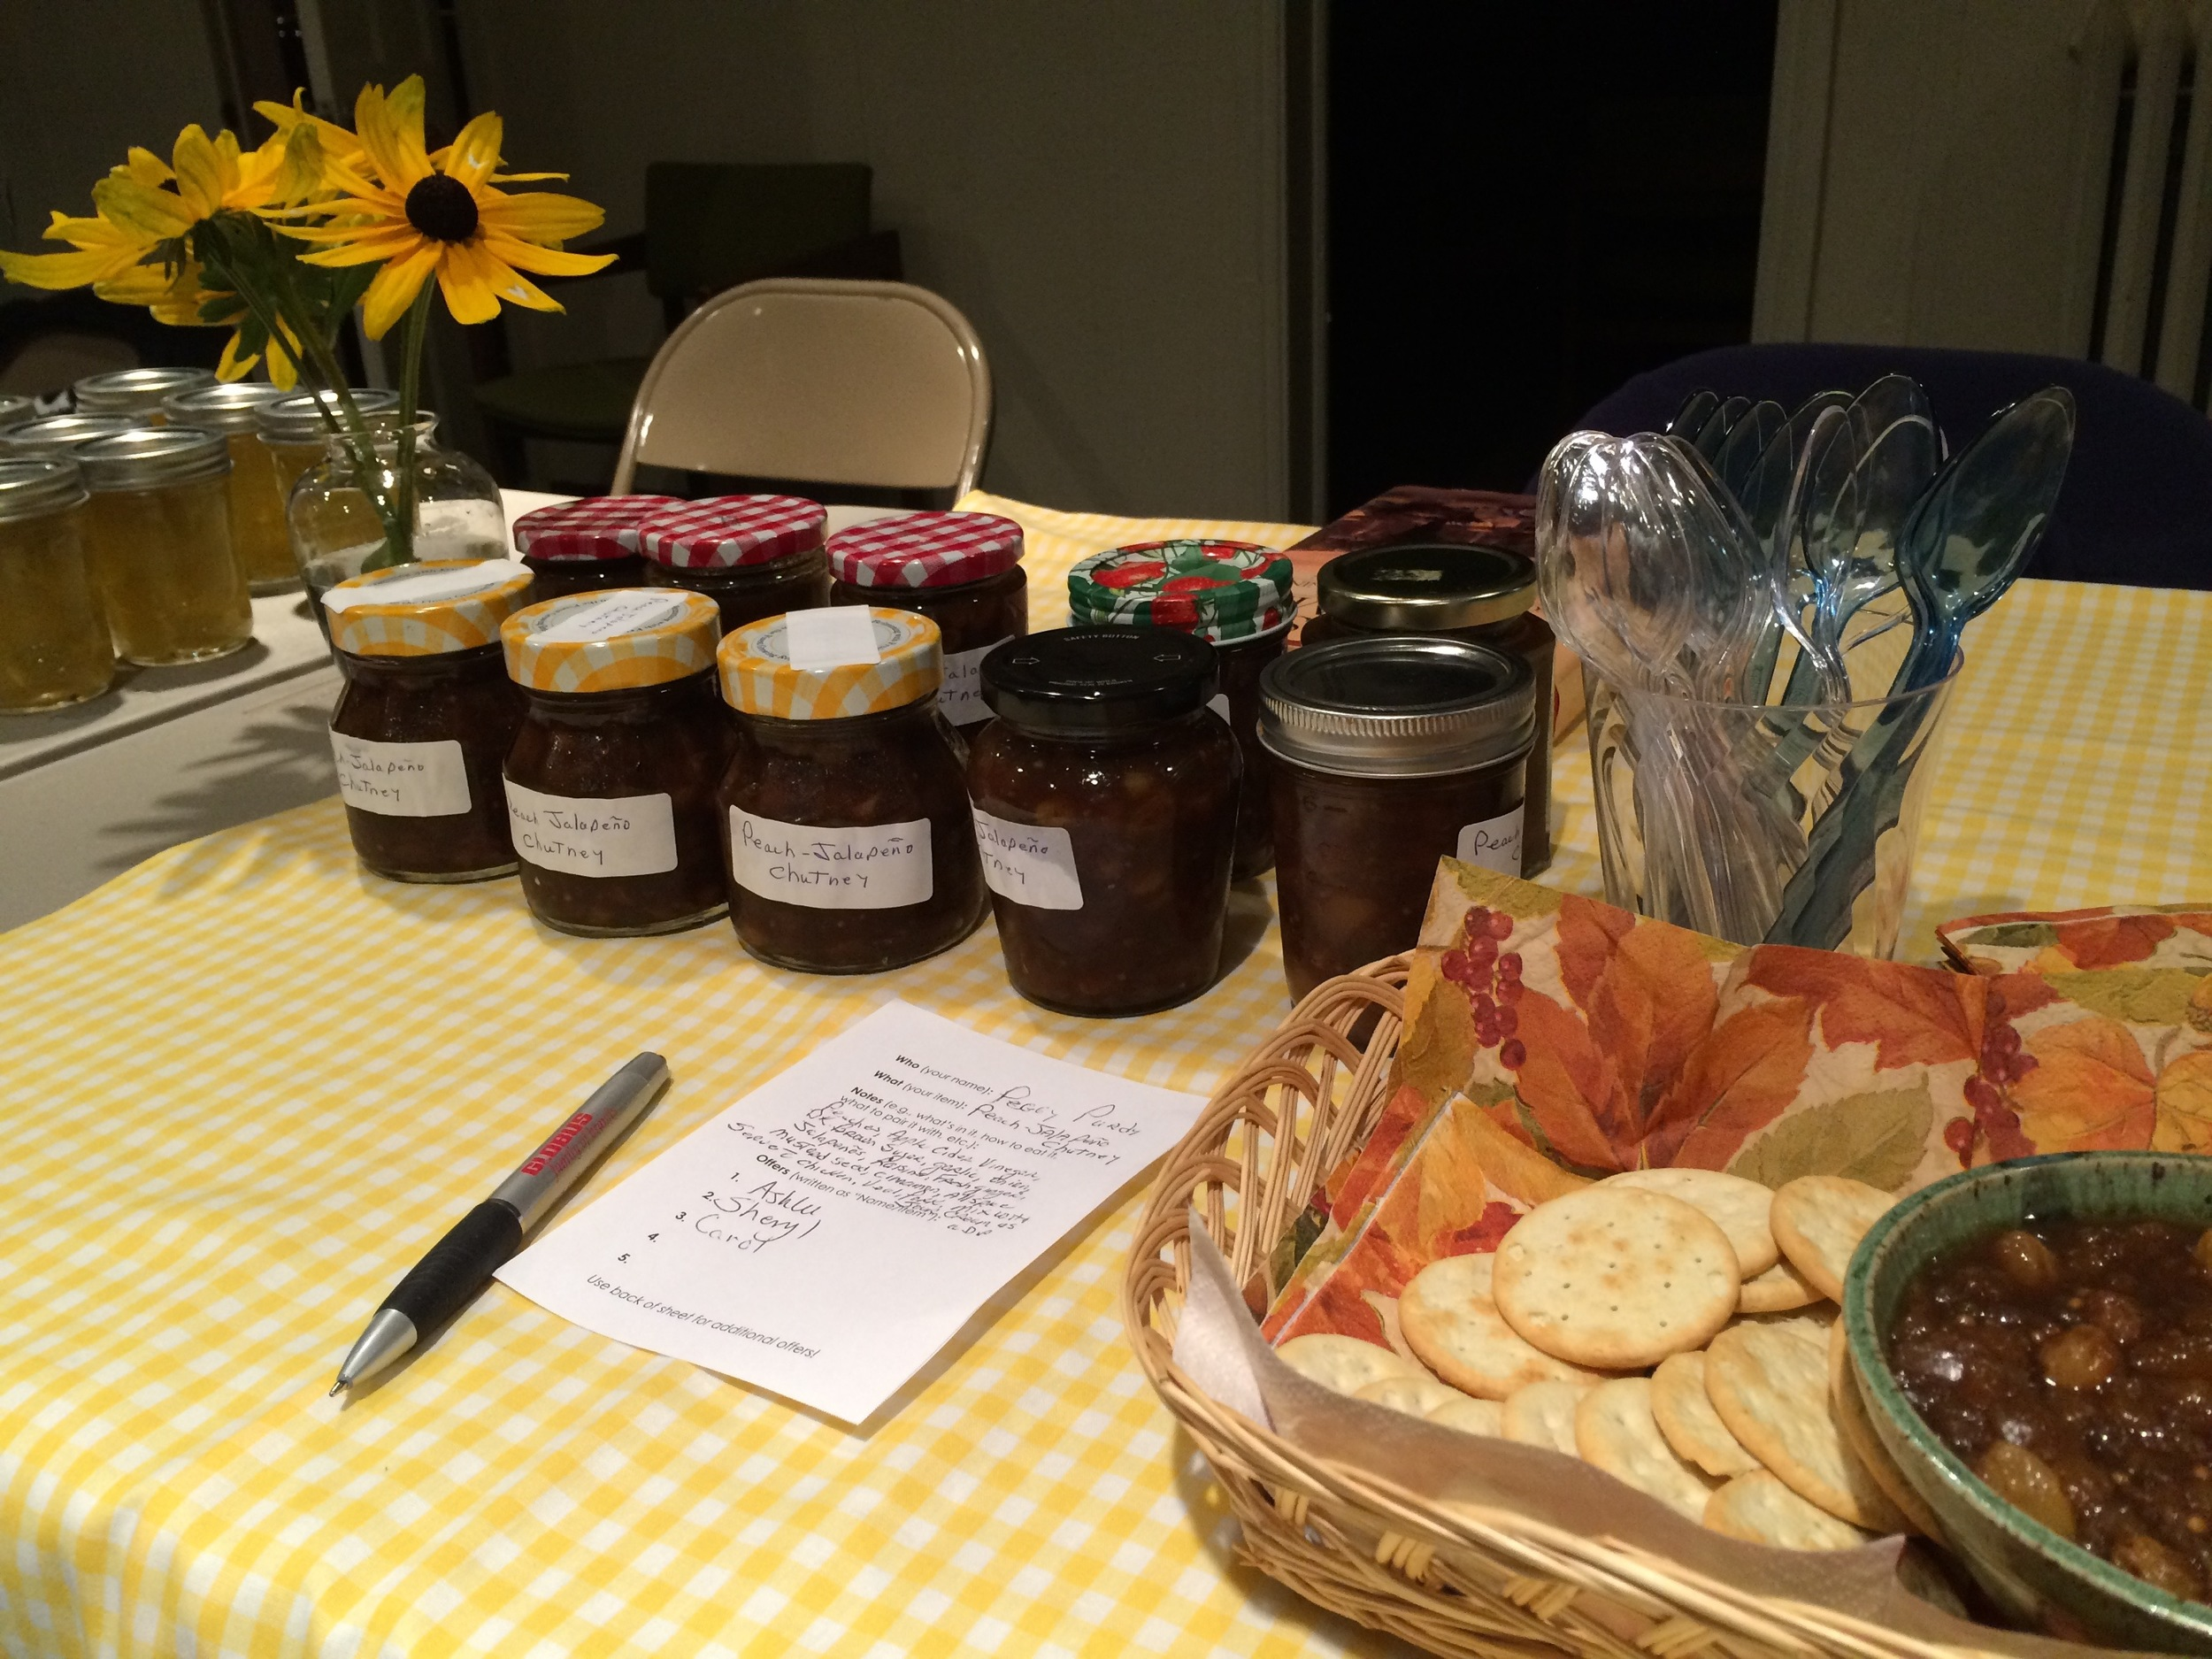 New Swapper, Peggy, had made this Peach Jalapeno Chutney long ago, and brought the recipe back out to make a batch for her Food Swap debut. We are all glad she did!